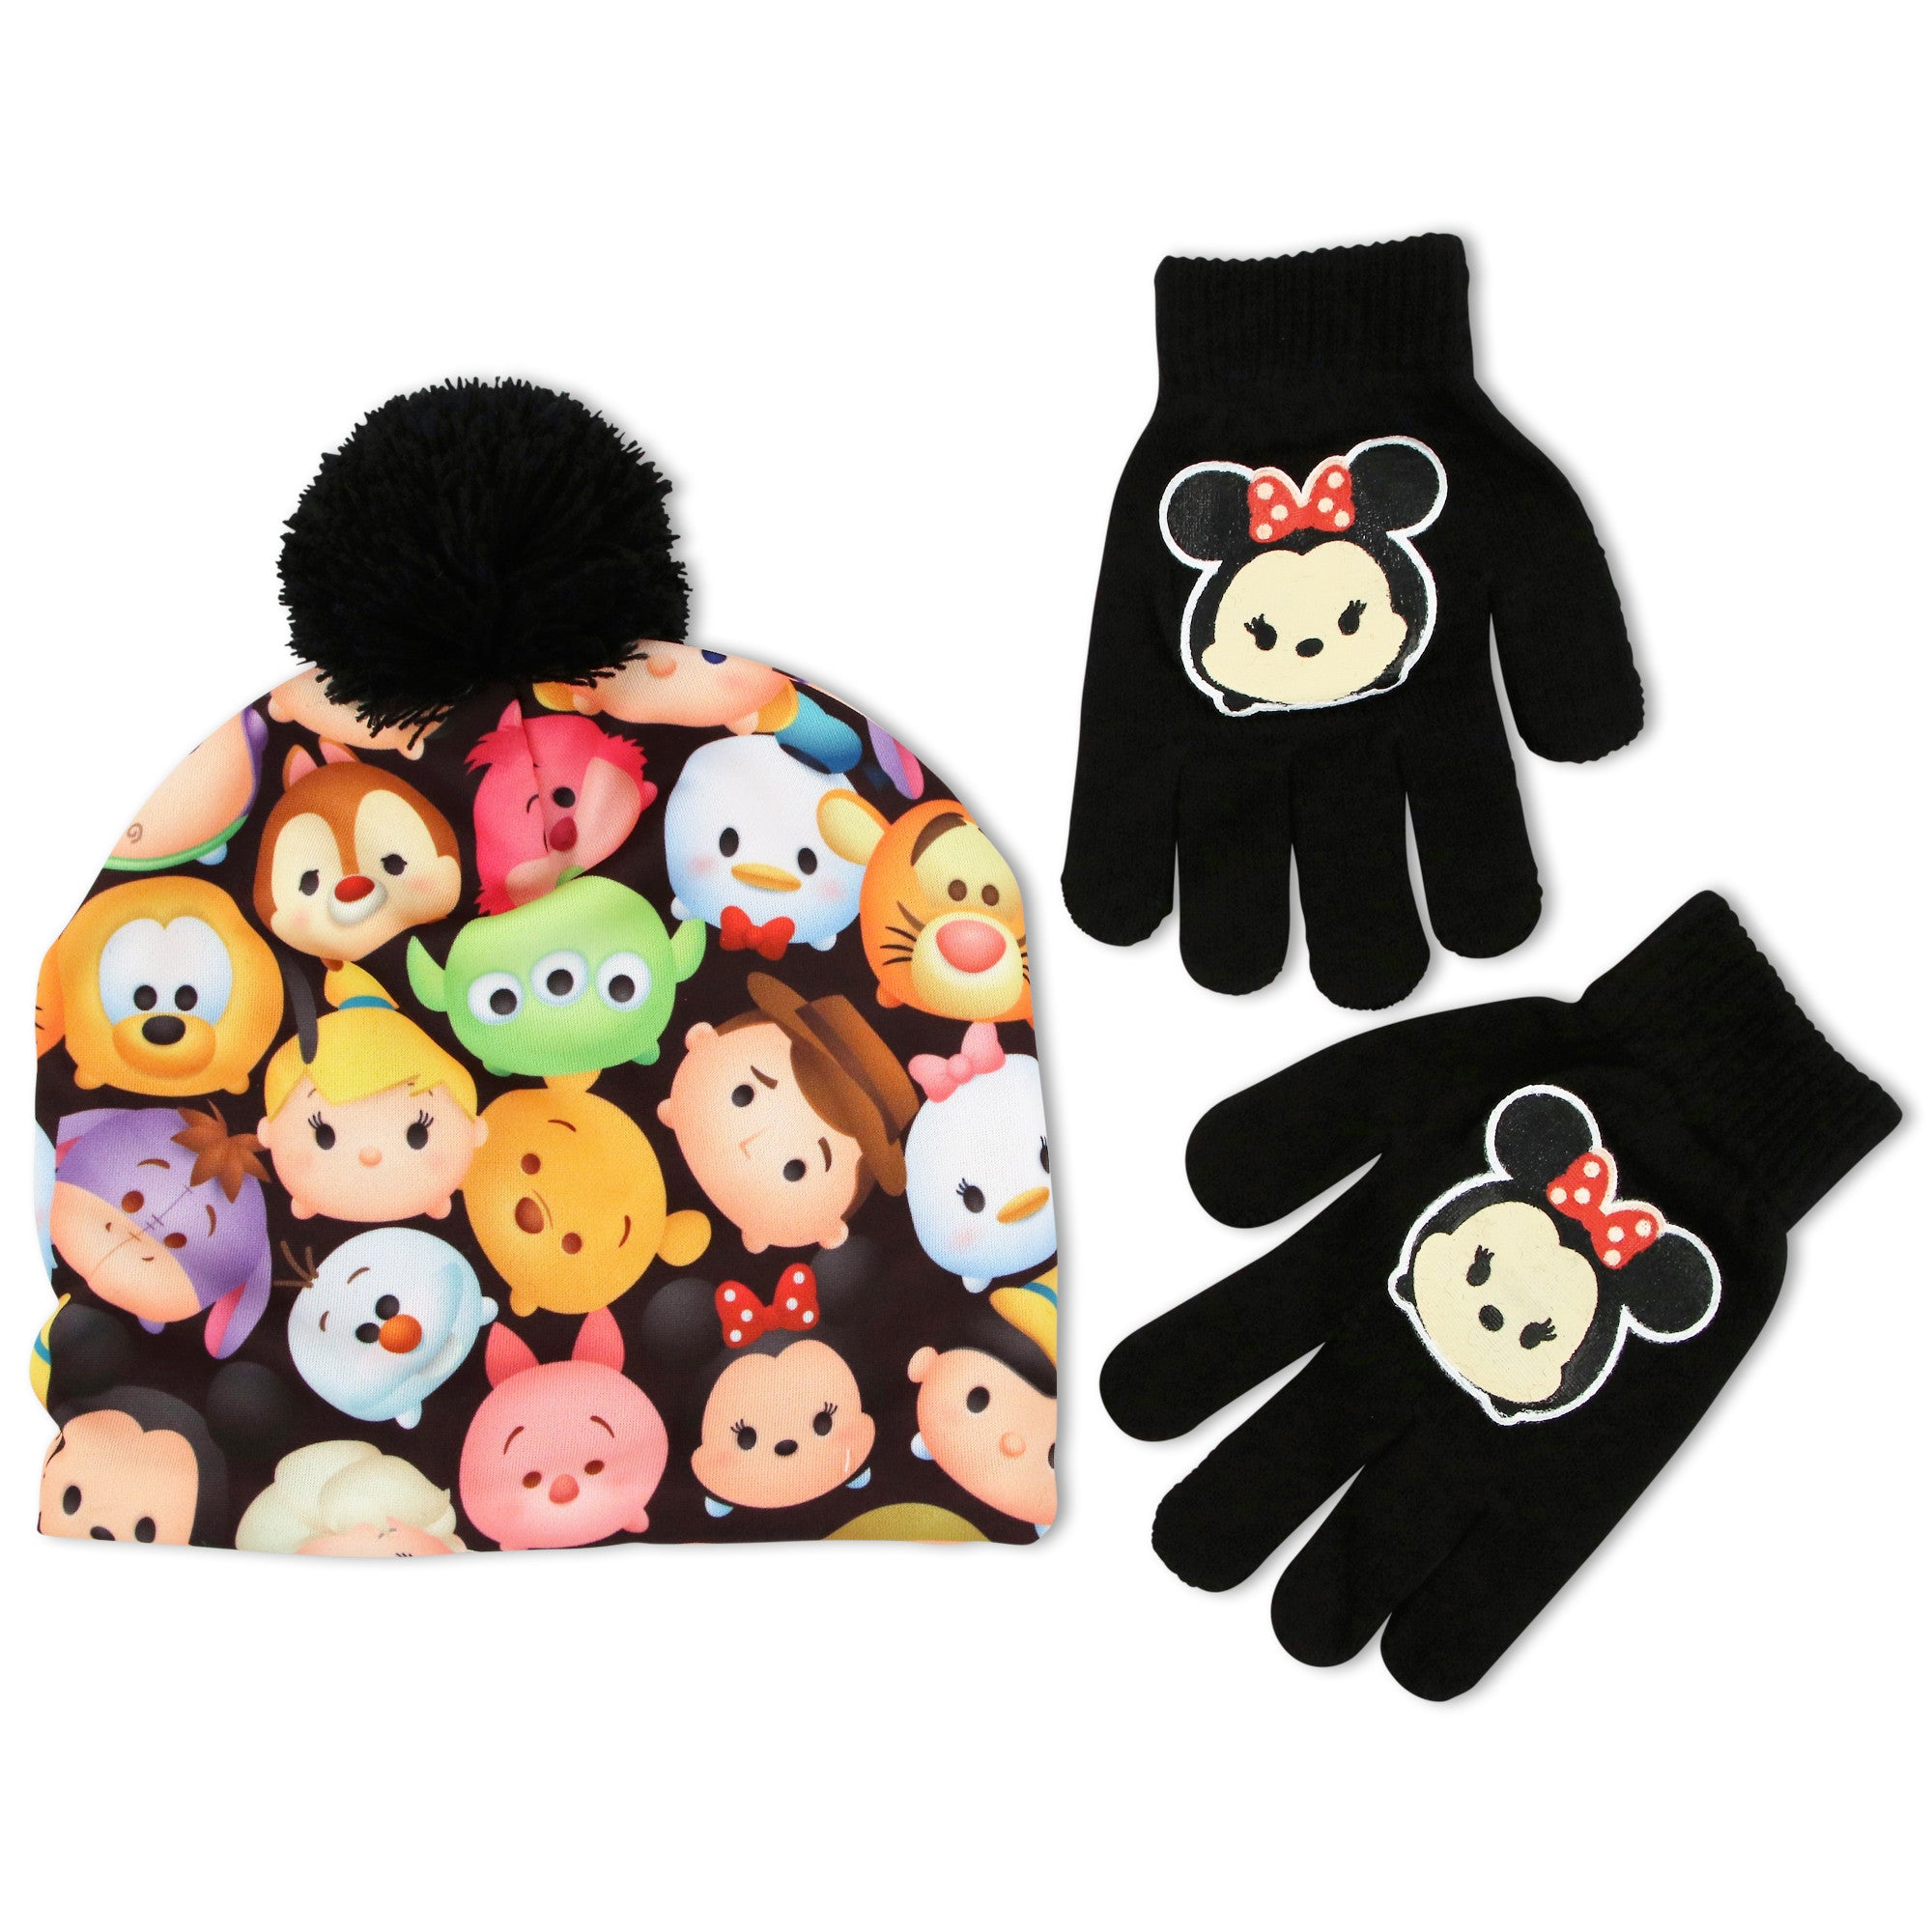 6baebf8ad8f Disney Tsum Tsum Beanie Hat and Glove Set